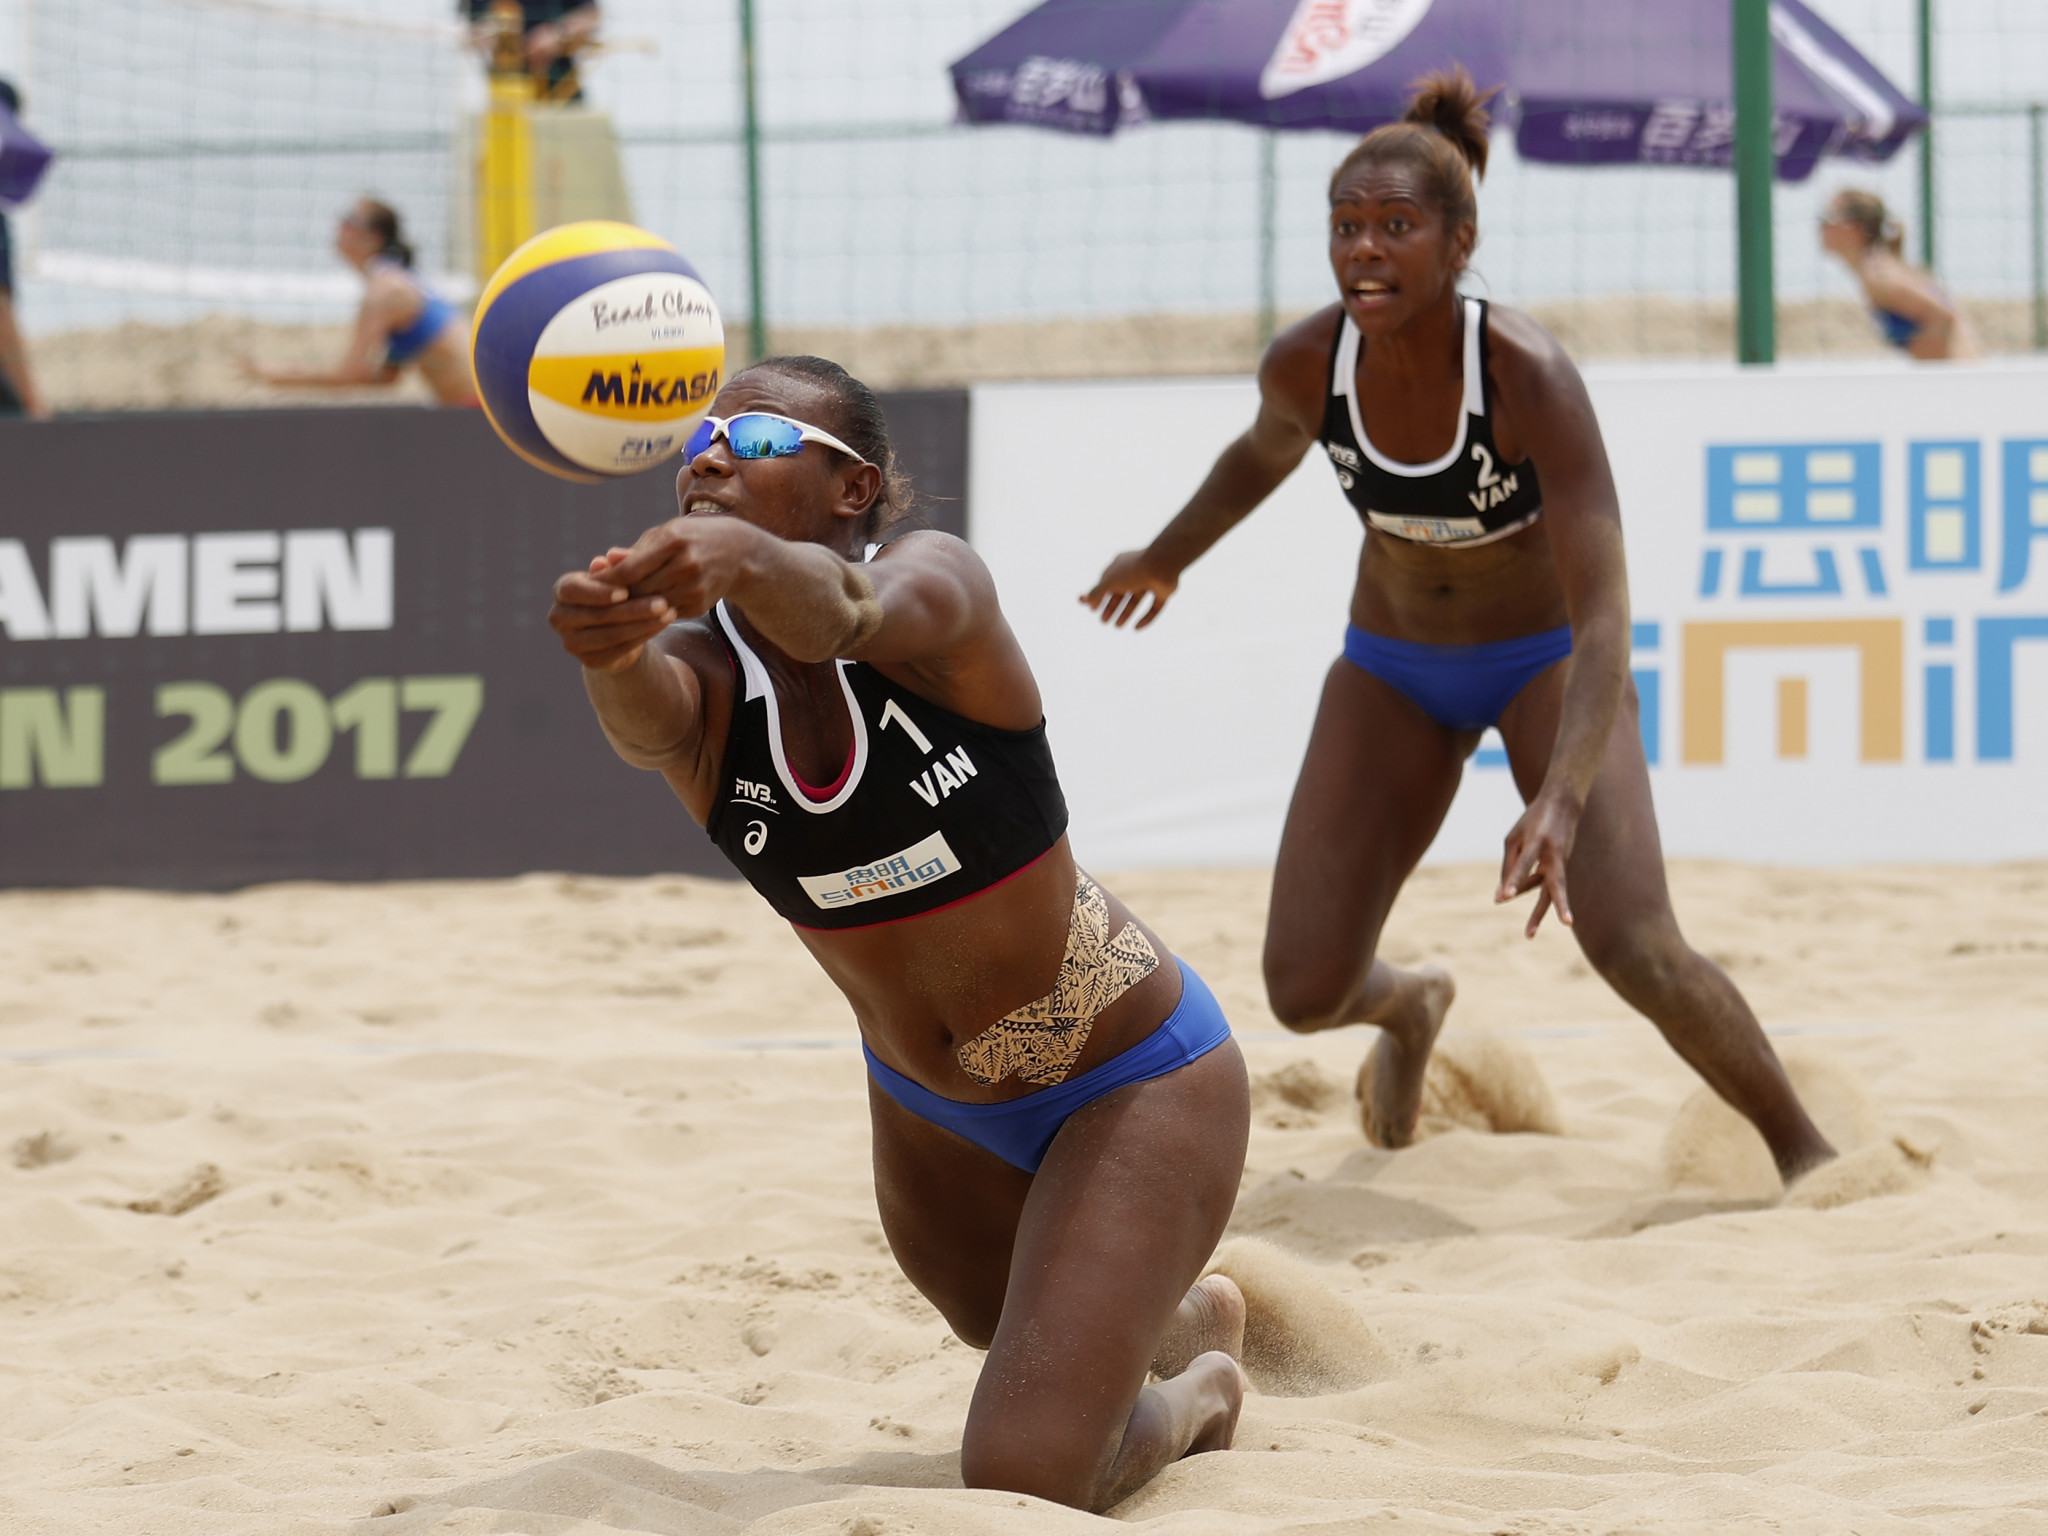 Schedule revealed for first Commonwealth Games beach volleyball competition at Gold Coast 2018